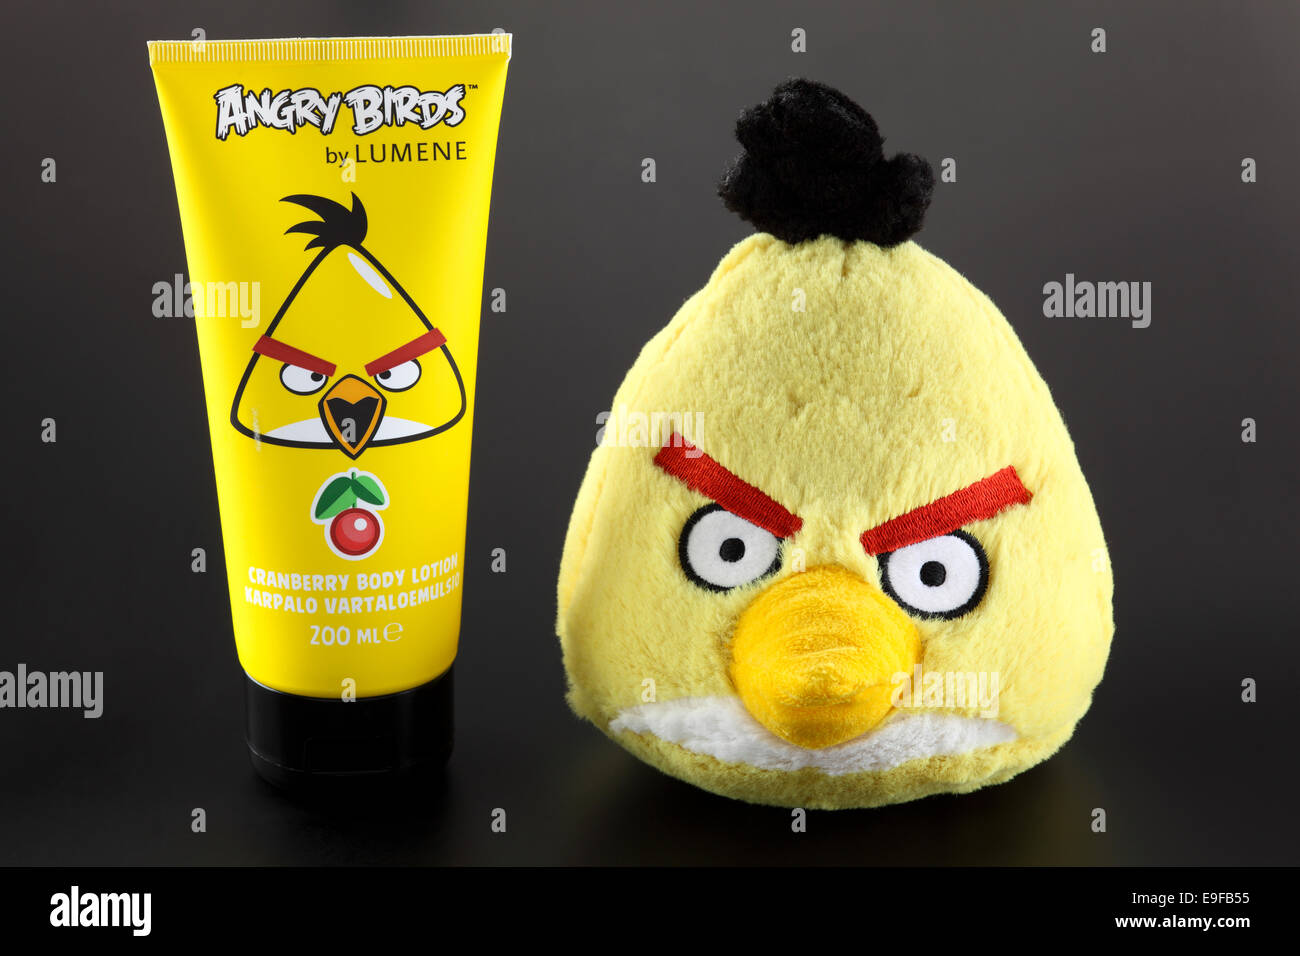 Yellow Angry Birds soft toy and Angry Birds by LUMENE Cranberry Body Lotion on black background. - Stock Image